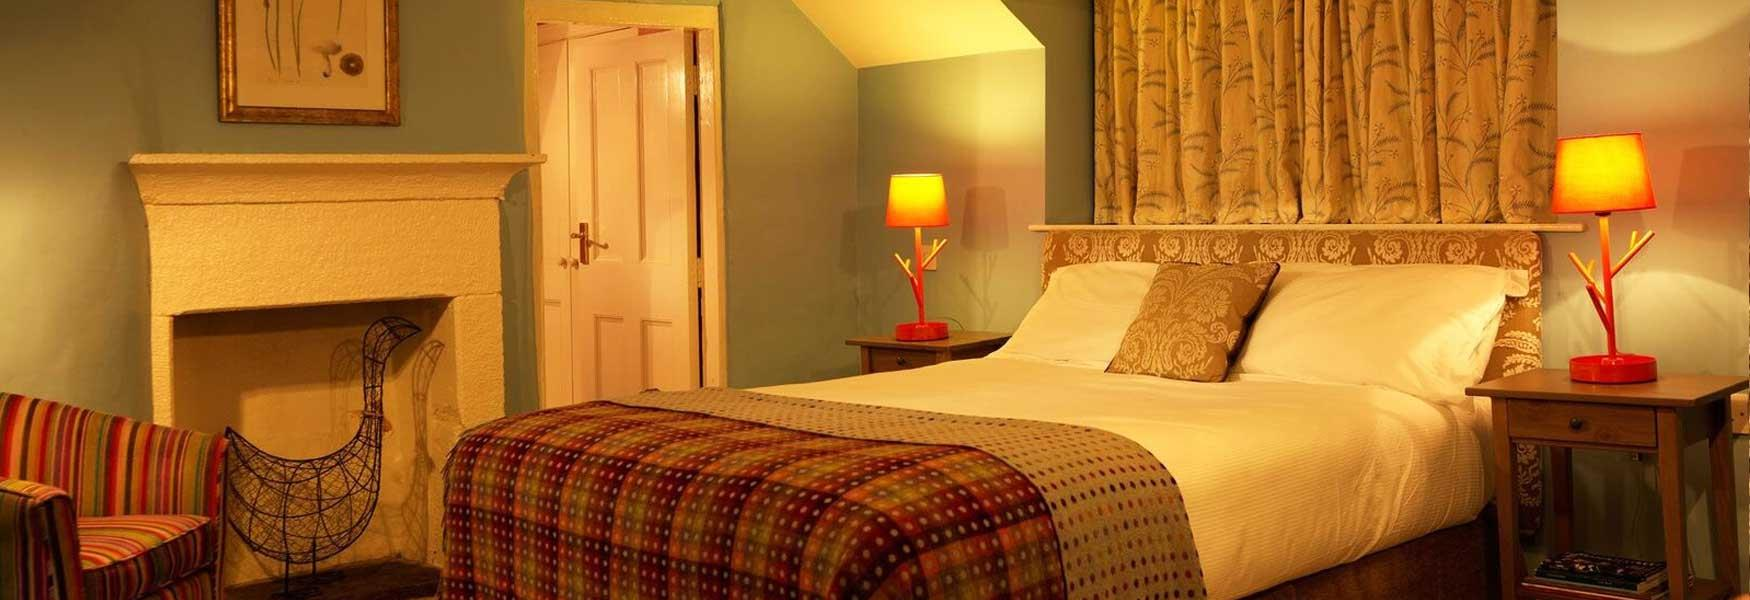 Snuggle up in a cosy country inn